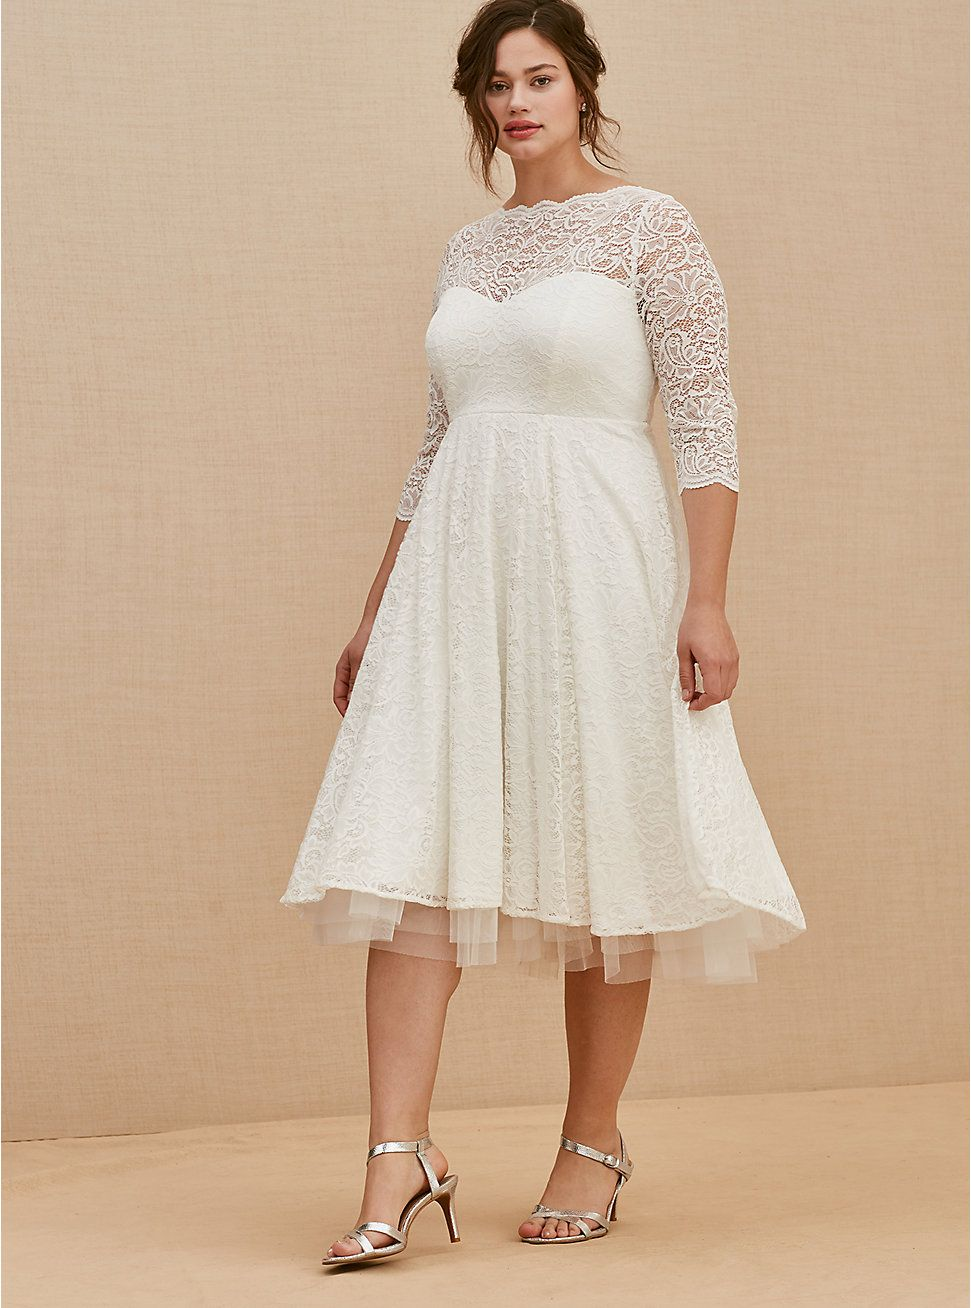 Ivory Lace TeaLength Wedding Dress in 2020 Plus size